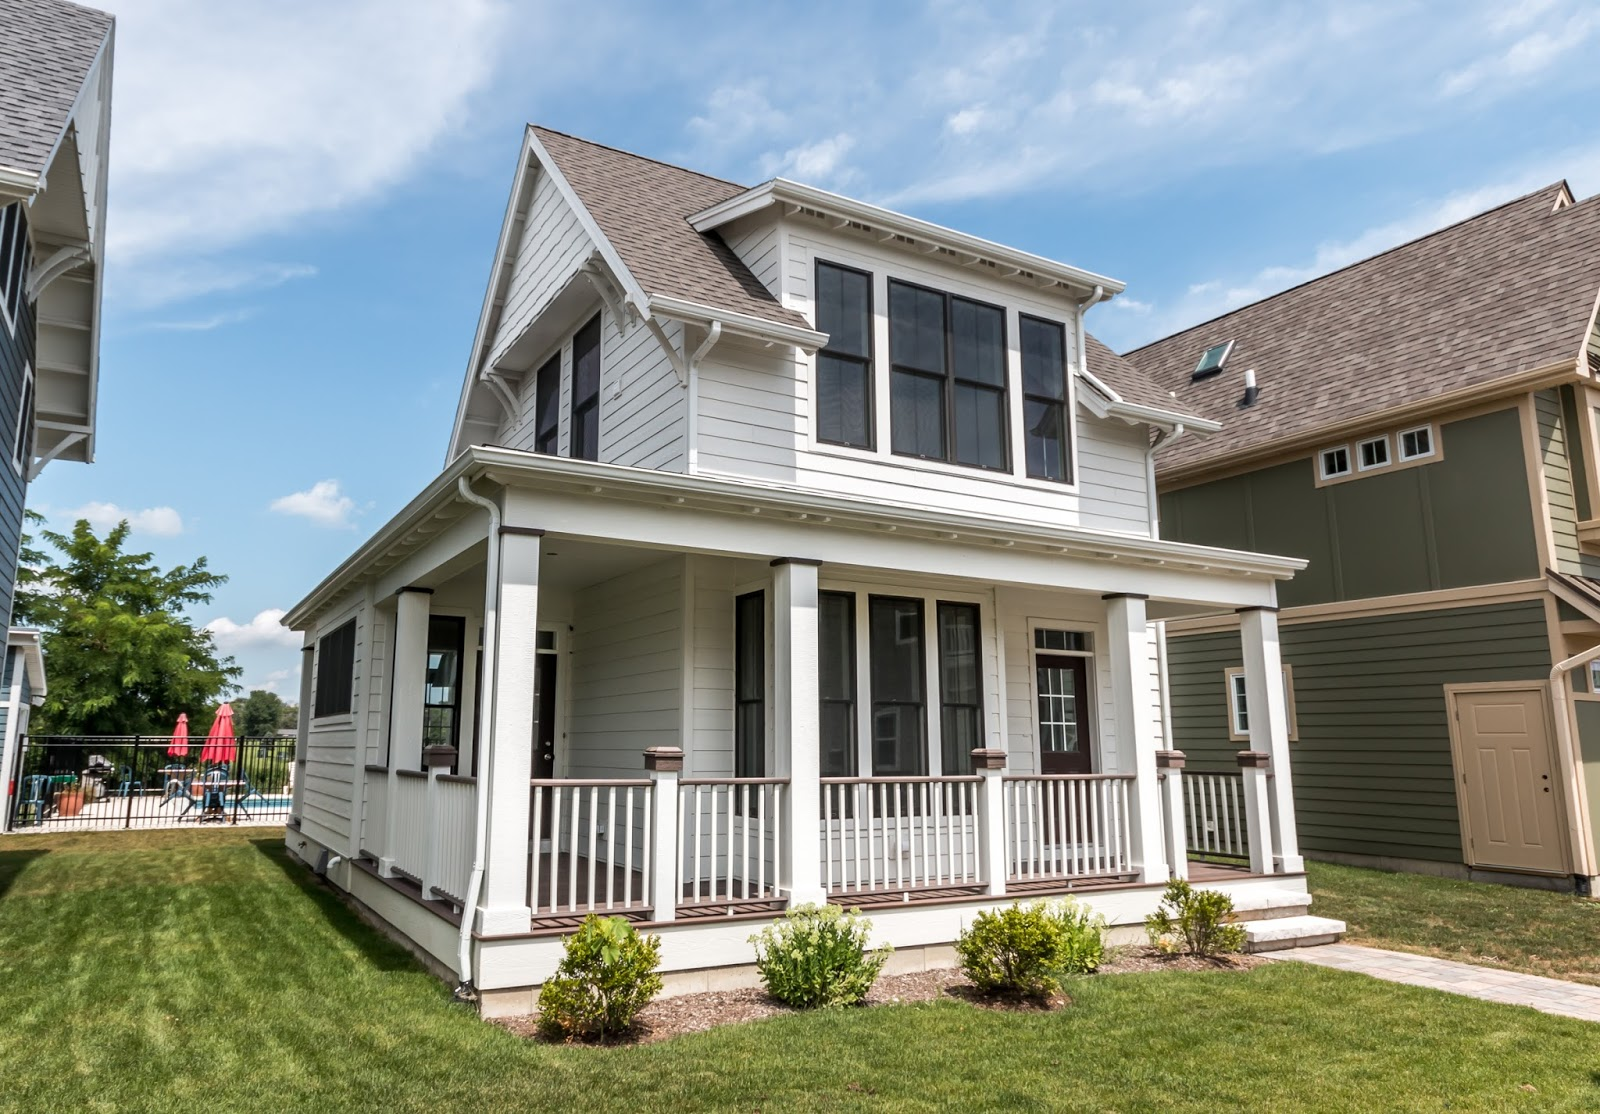 Tiny Home Designs: Touring Two Tiny Homes At Heritage Harbor